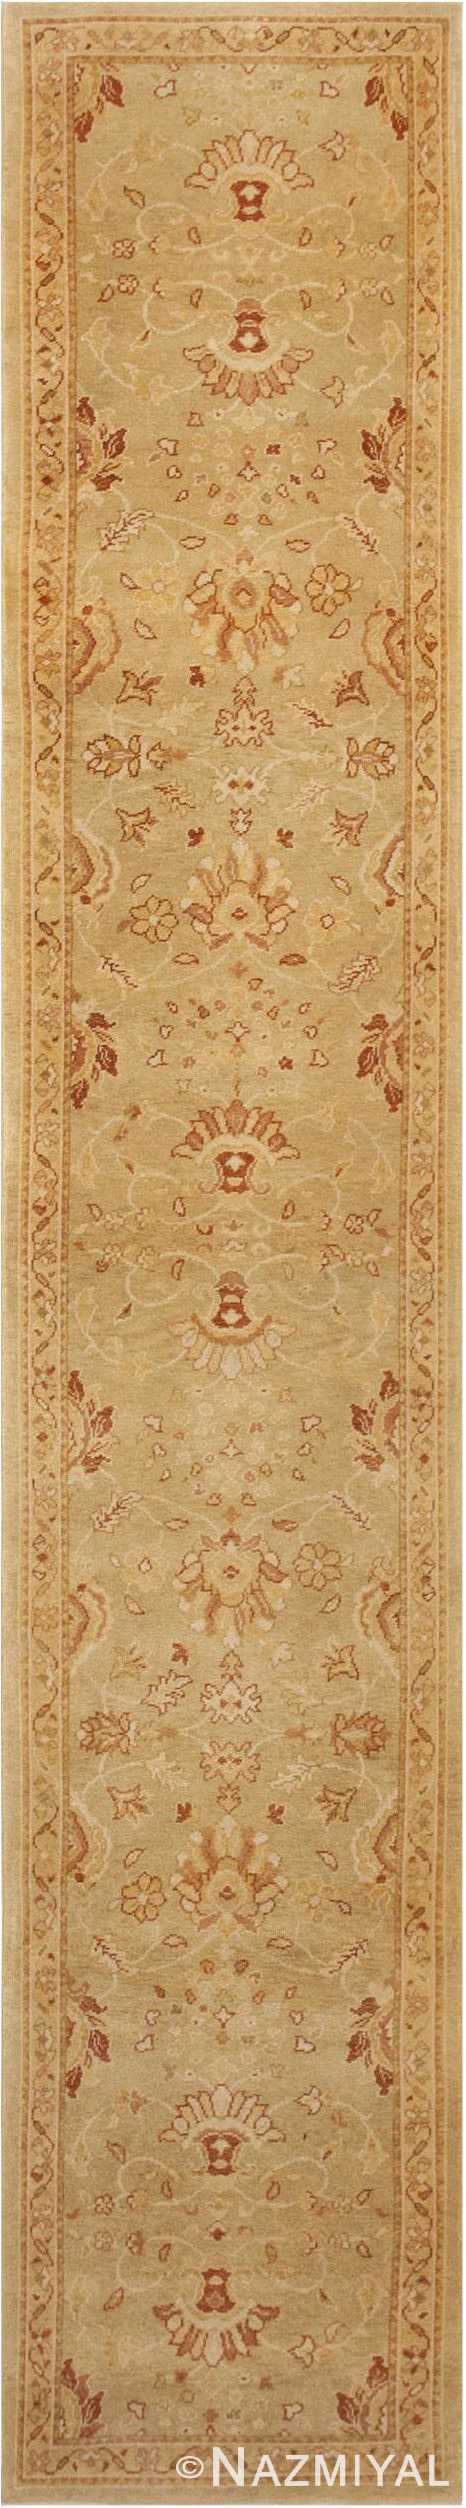 Contemporary Modern Oushak Runner Rug #46155 by Nazmiyal Antique Rugs